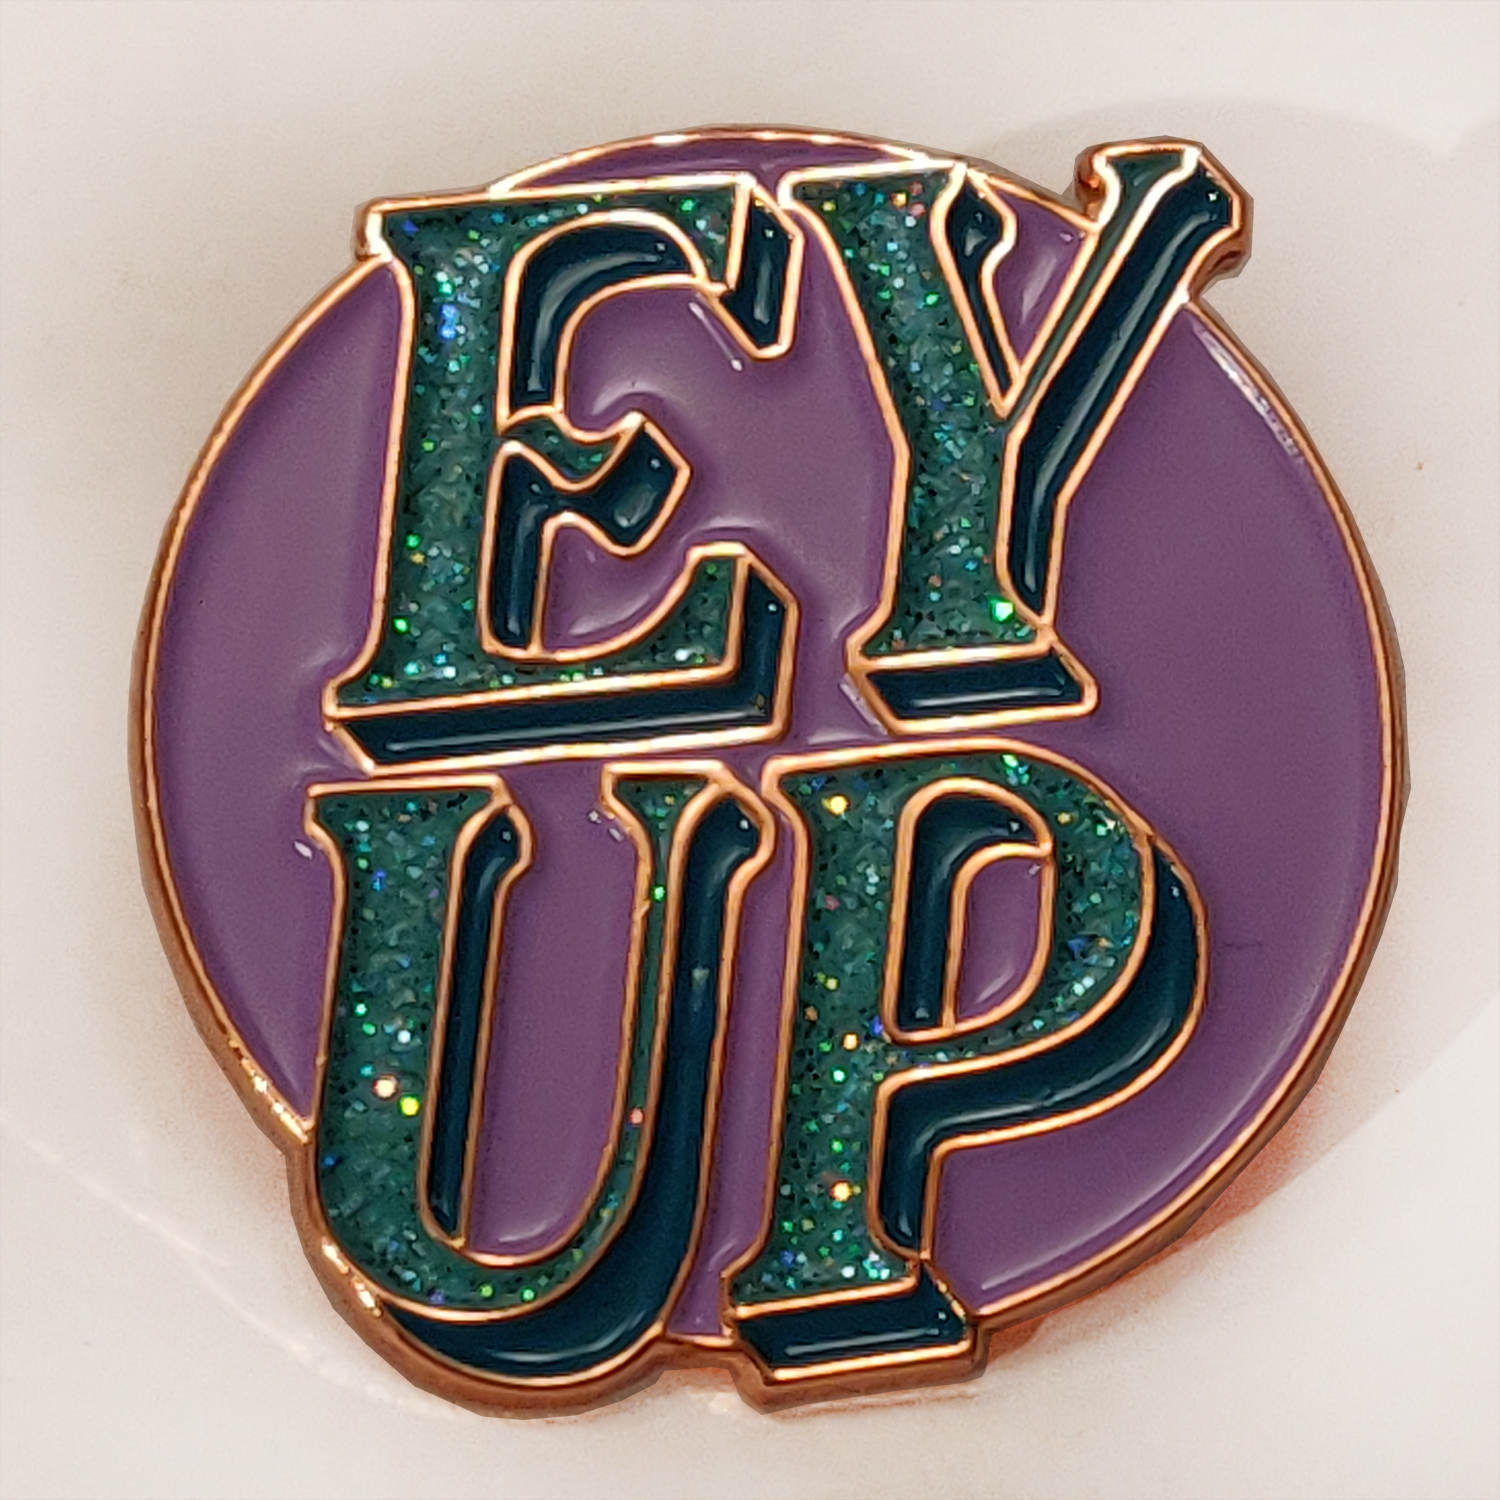 'EY UP' Enamel pin- Turquoise/lilac